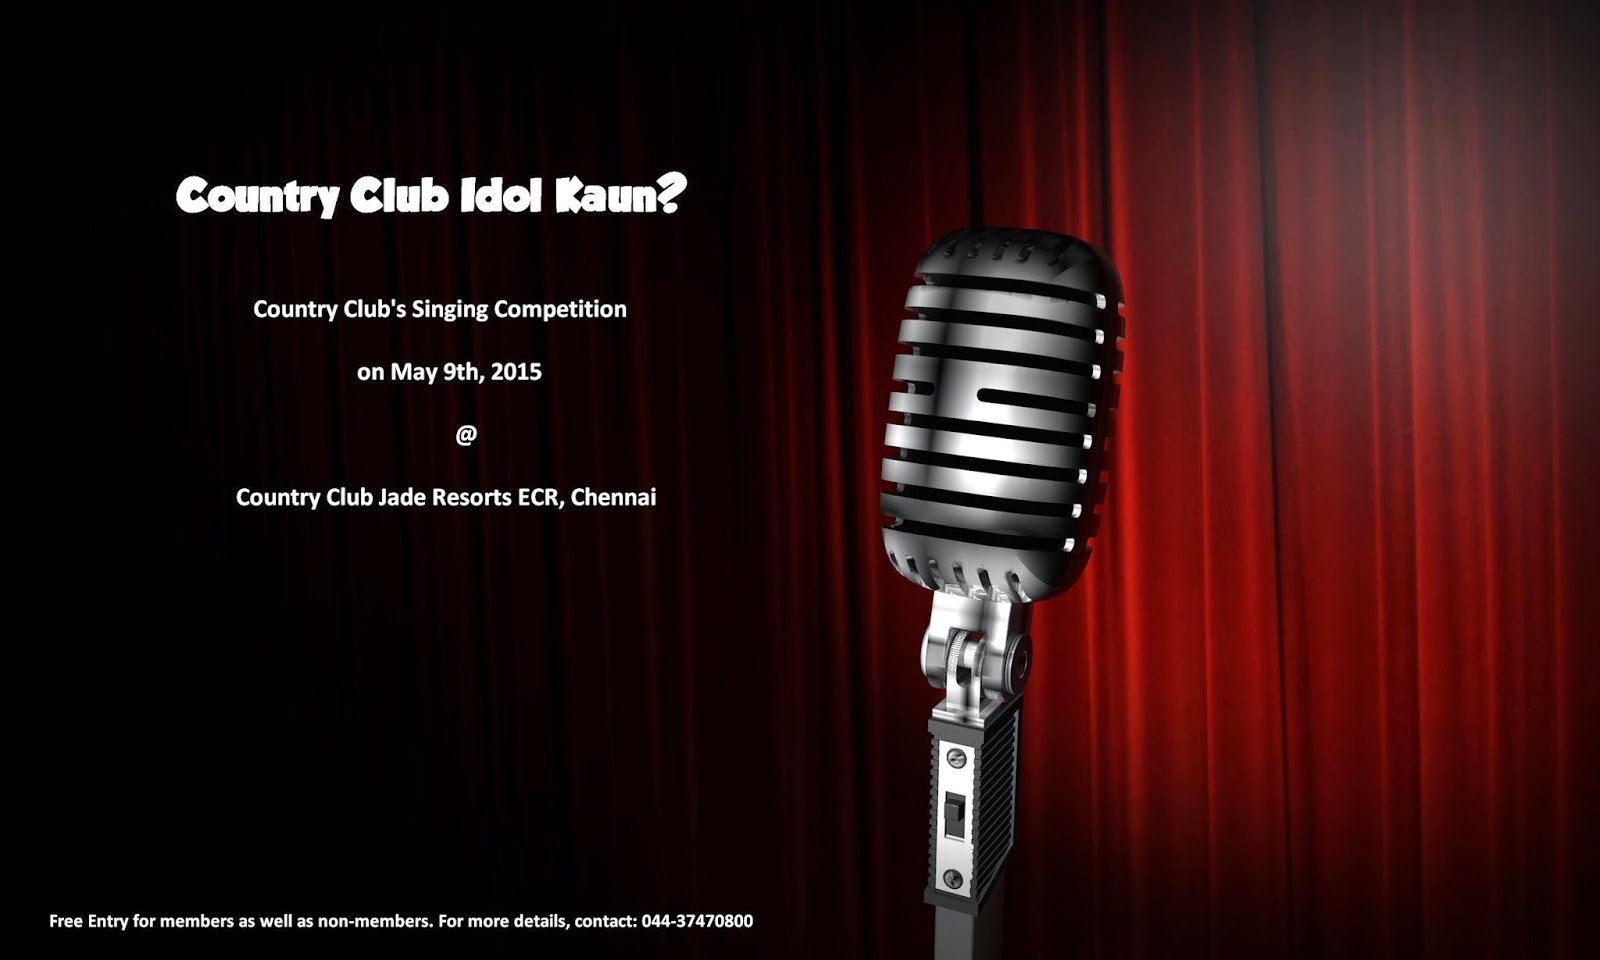 Country Club Idol Kaun, Country Club India